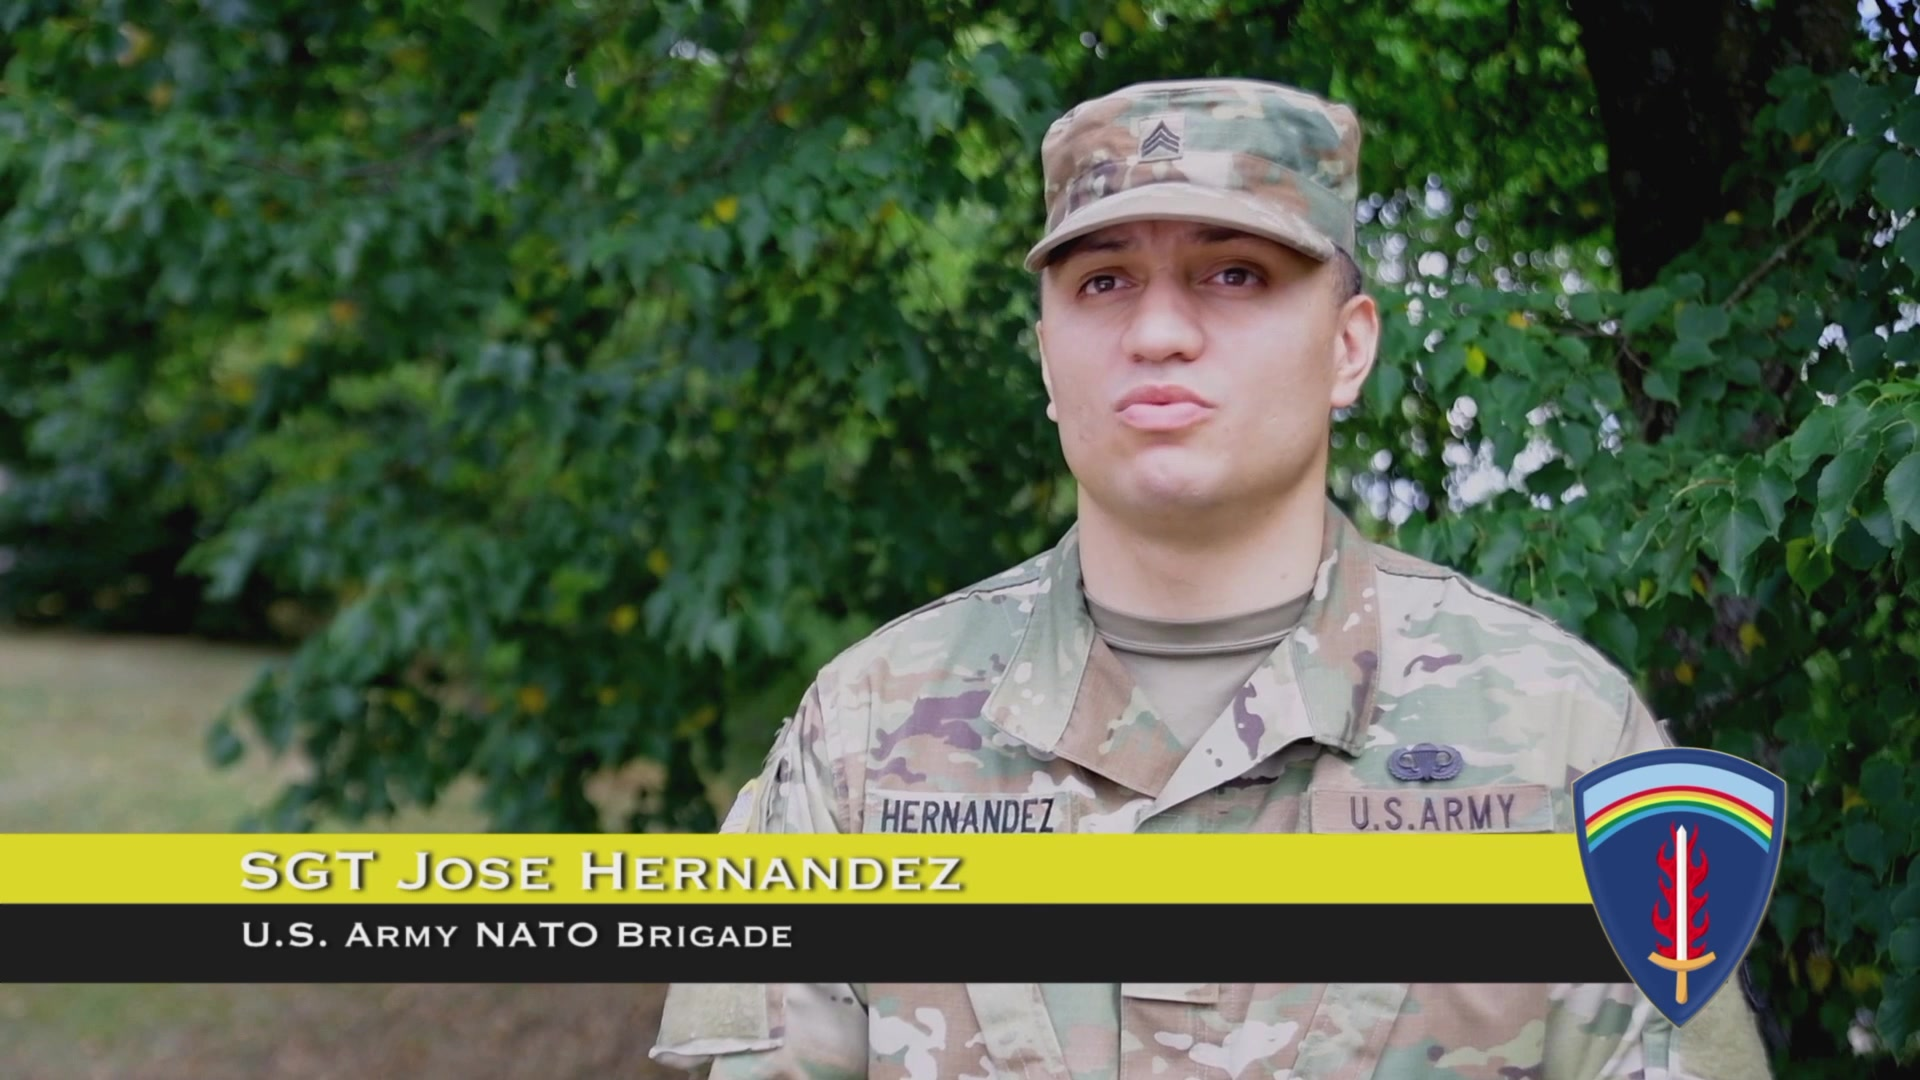 U.S. Army Europe Soldiers present an overview of the mission and importance of U.S. Army Europe.